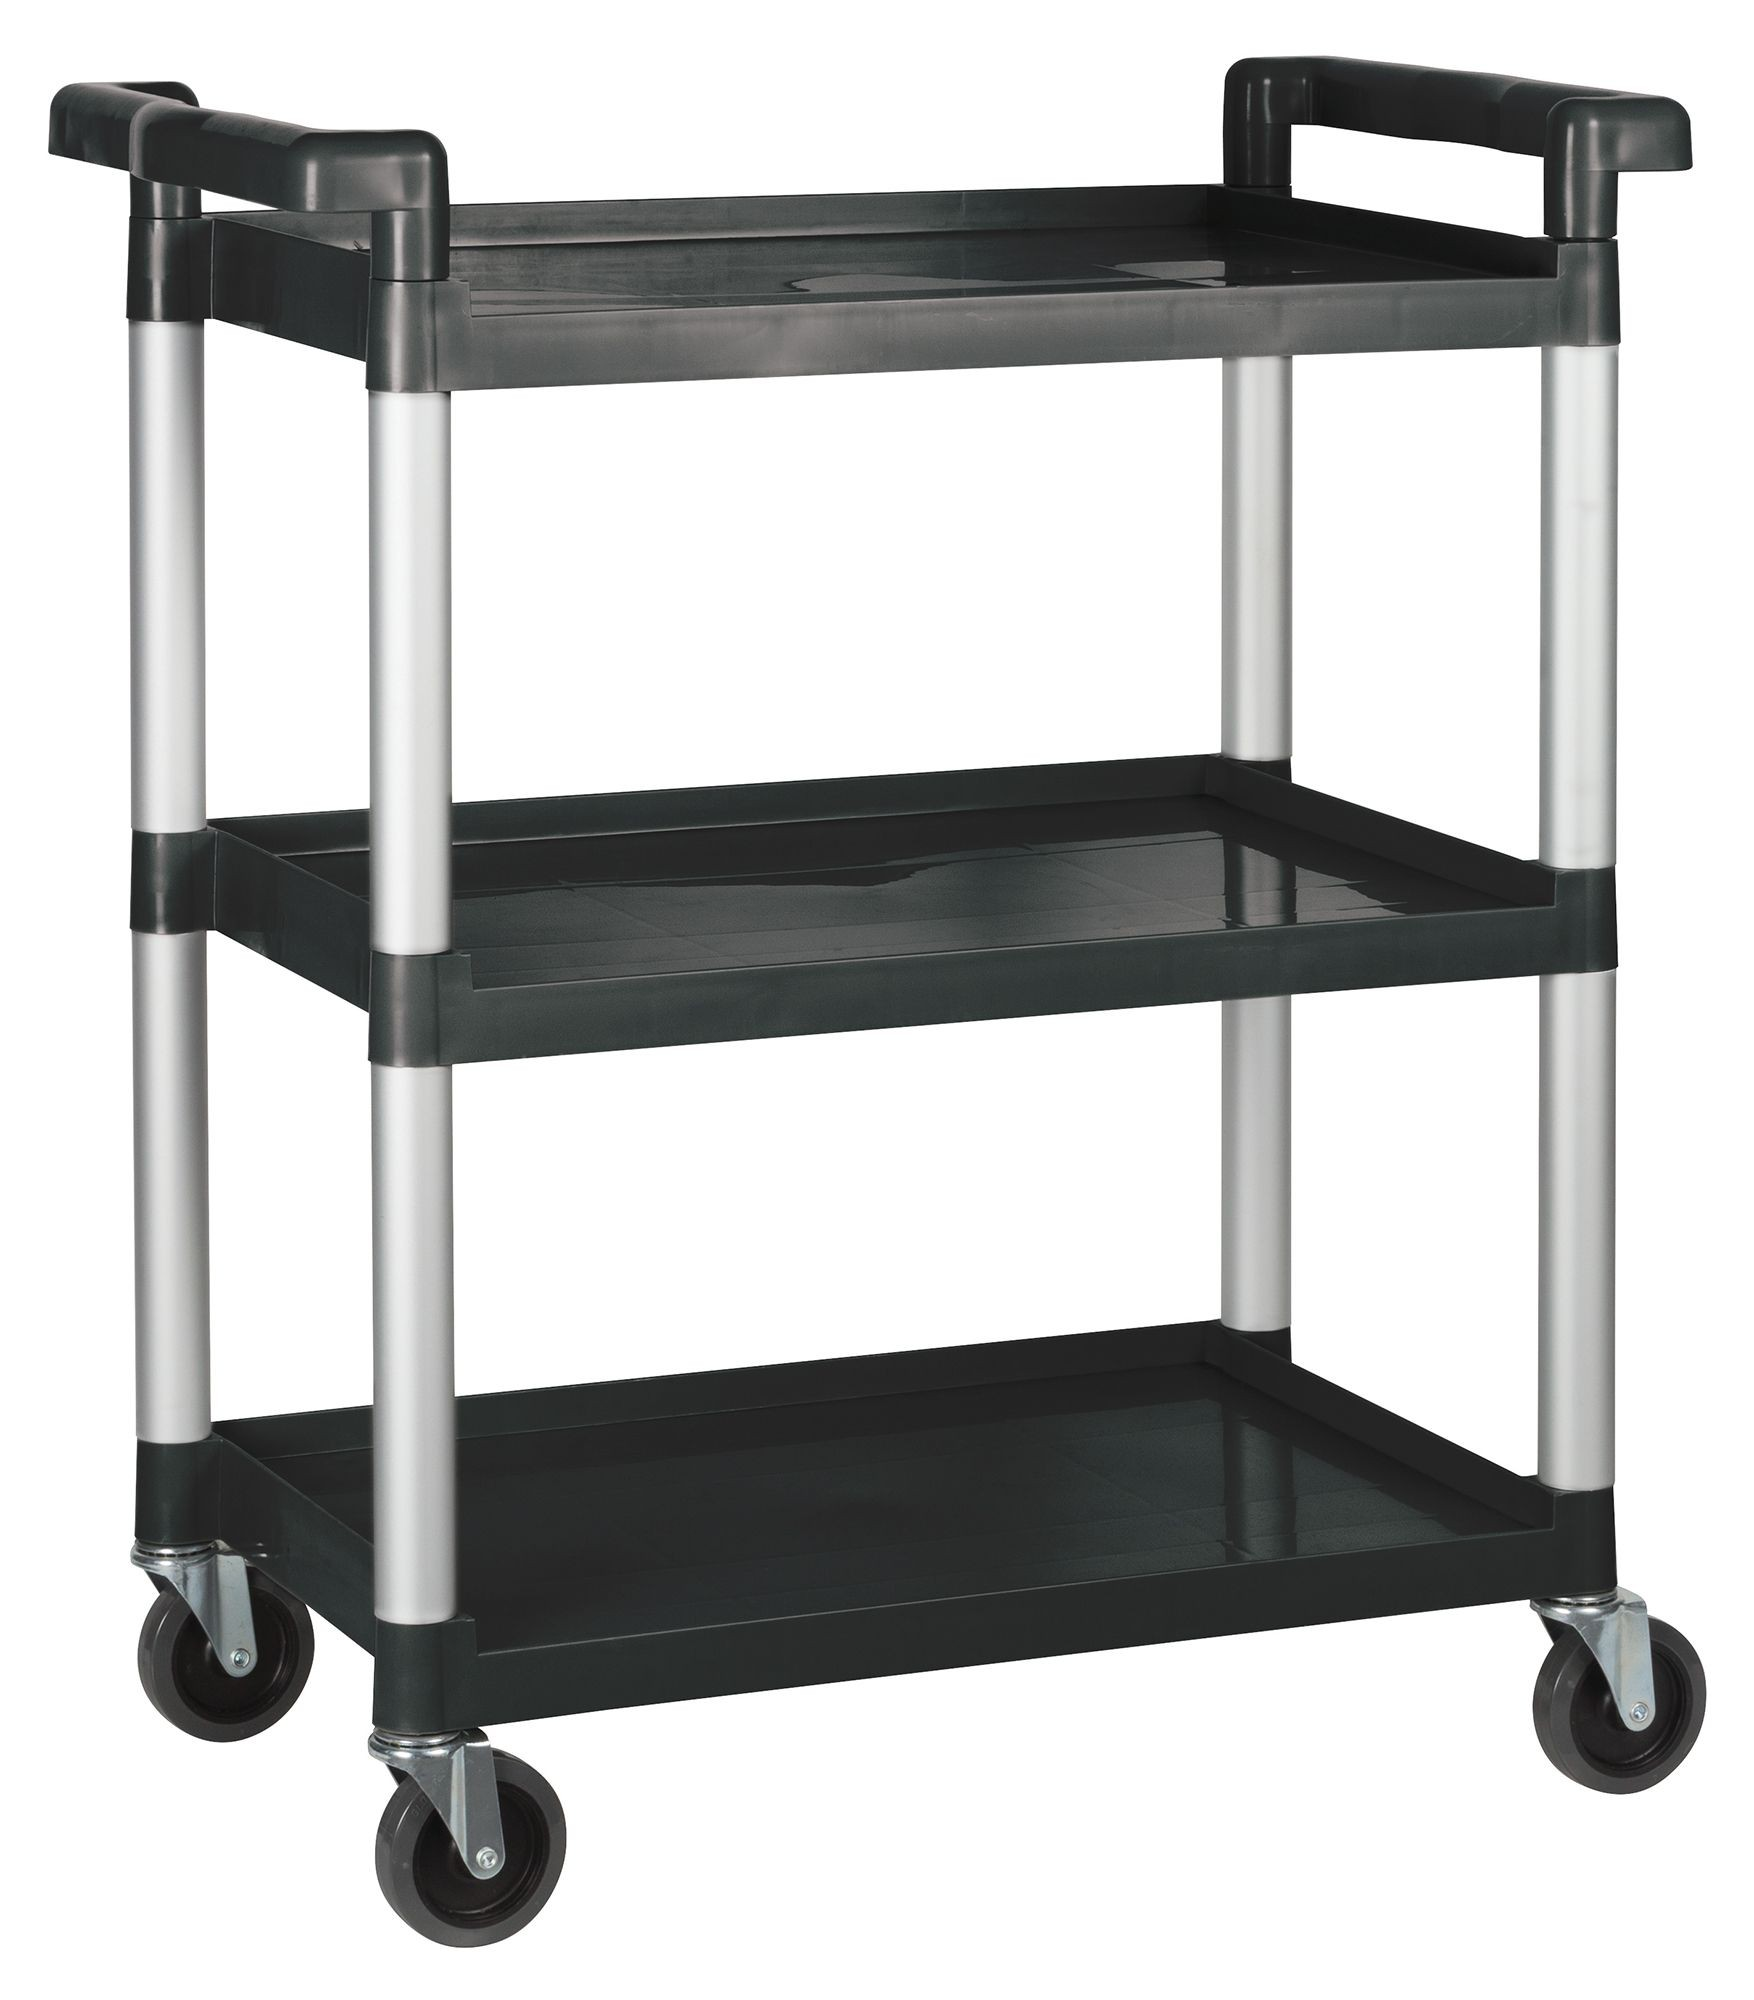 3 Tier Utility Cart Black (Kd)